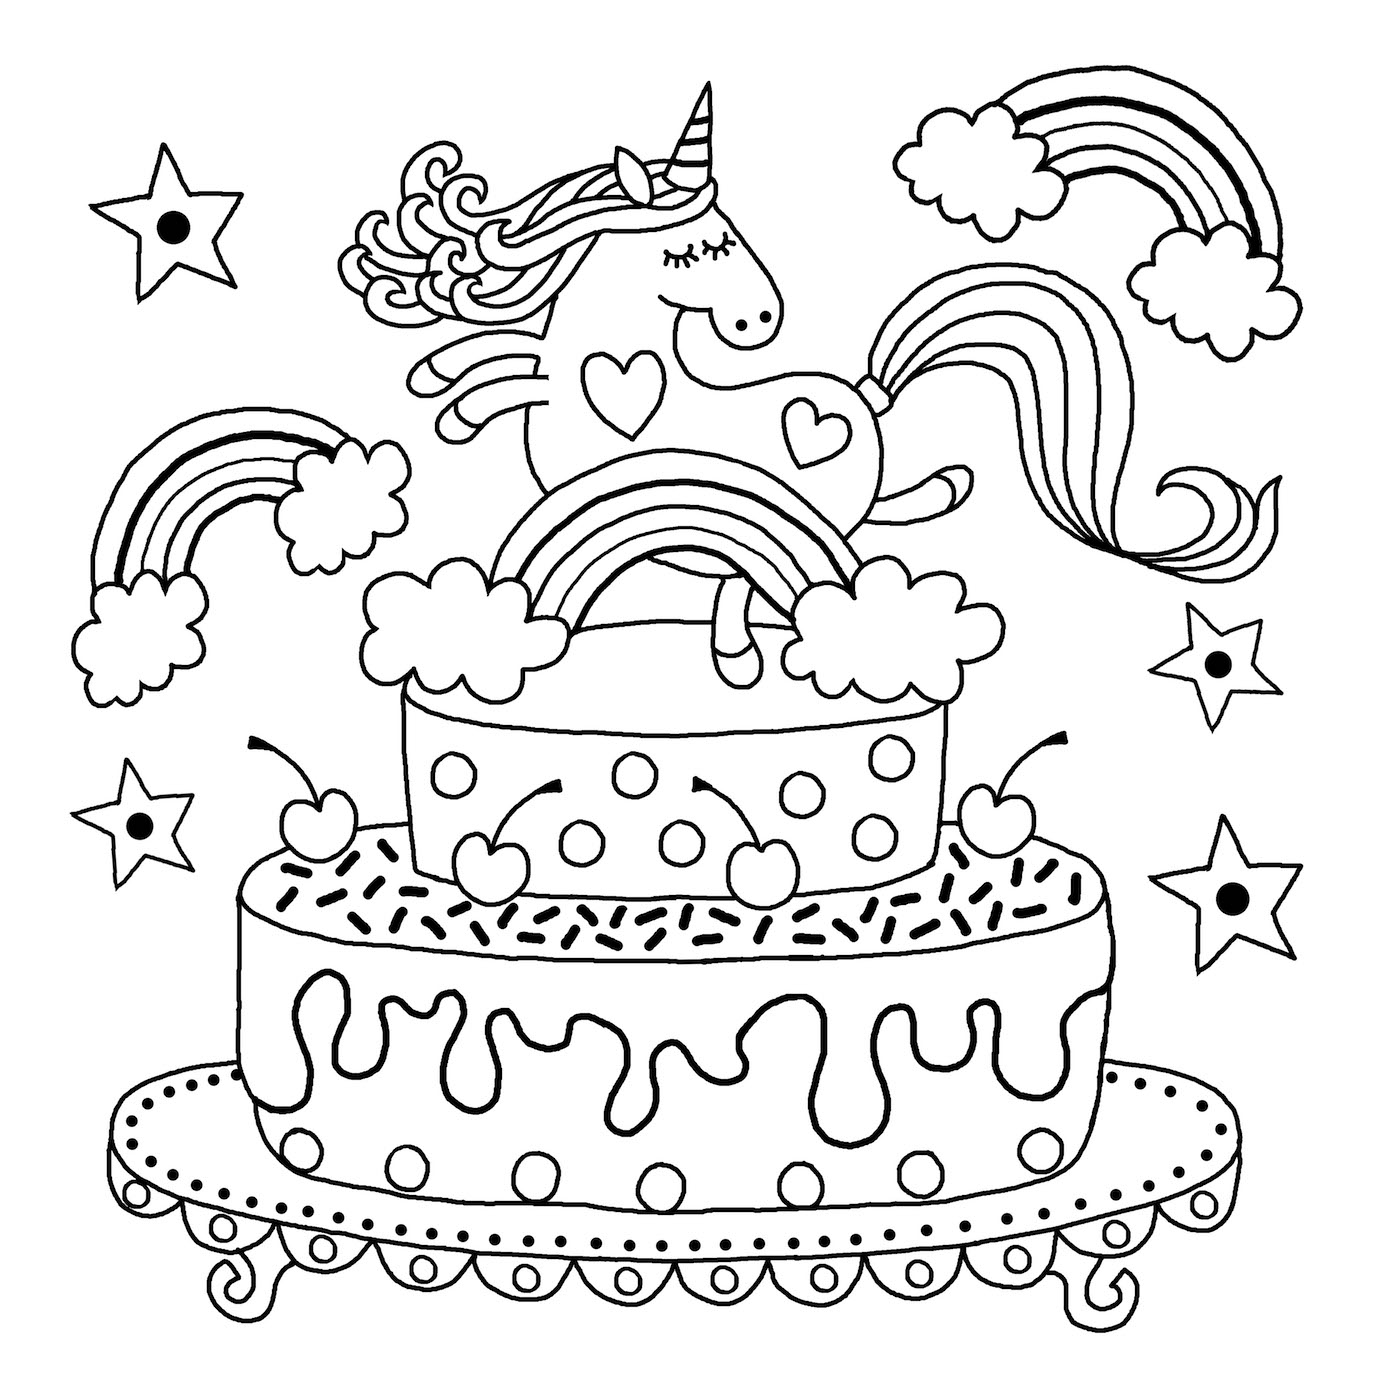 coloring pictures of unicorn print download unicorn coloring pages for children of pictures coloring unicorn